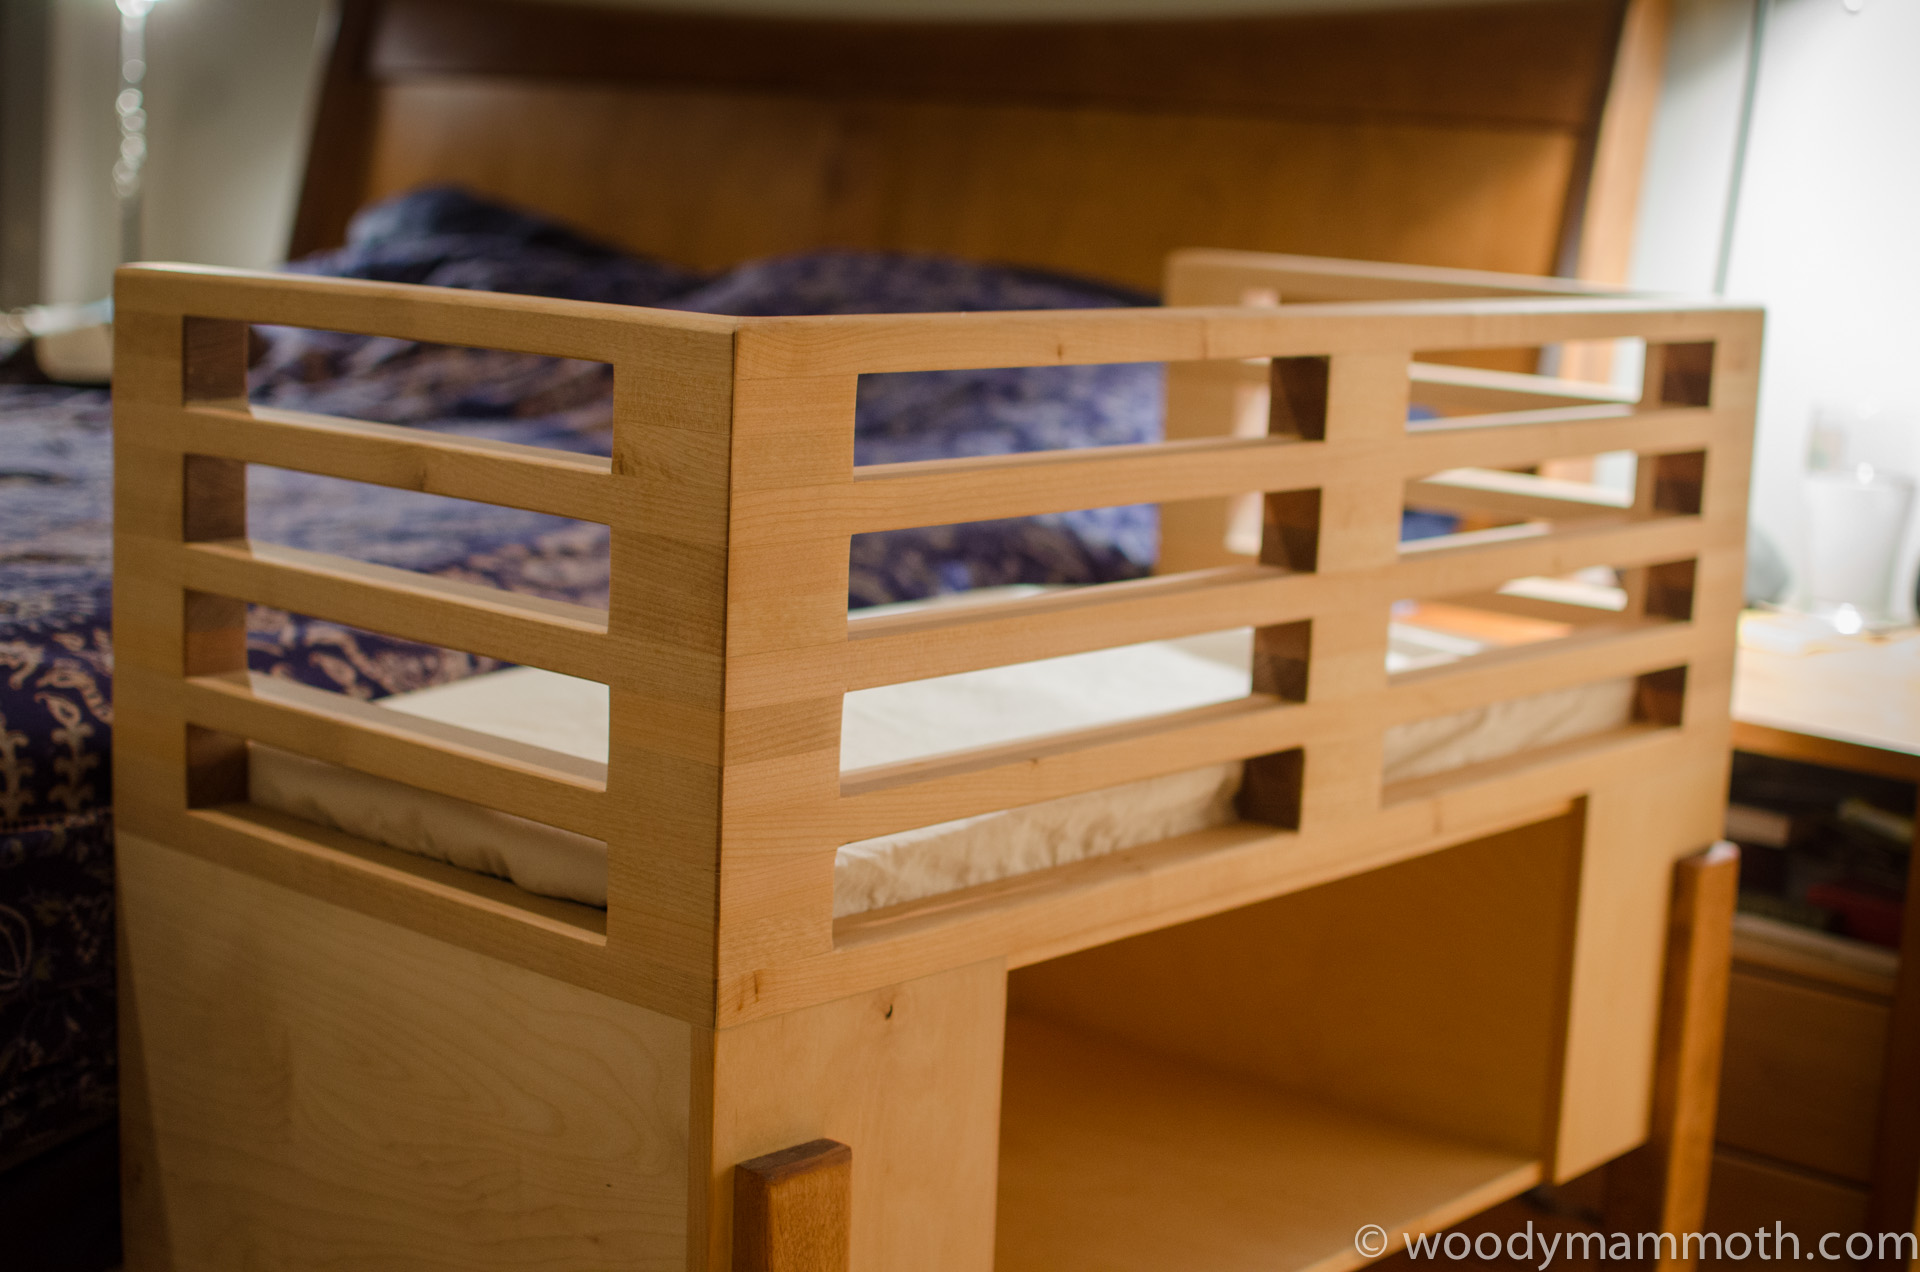 Storage side of attached bed